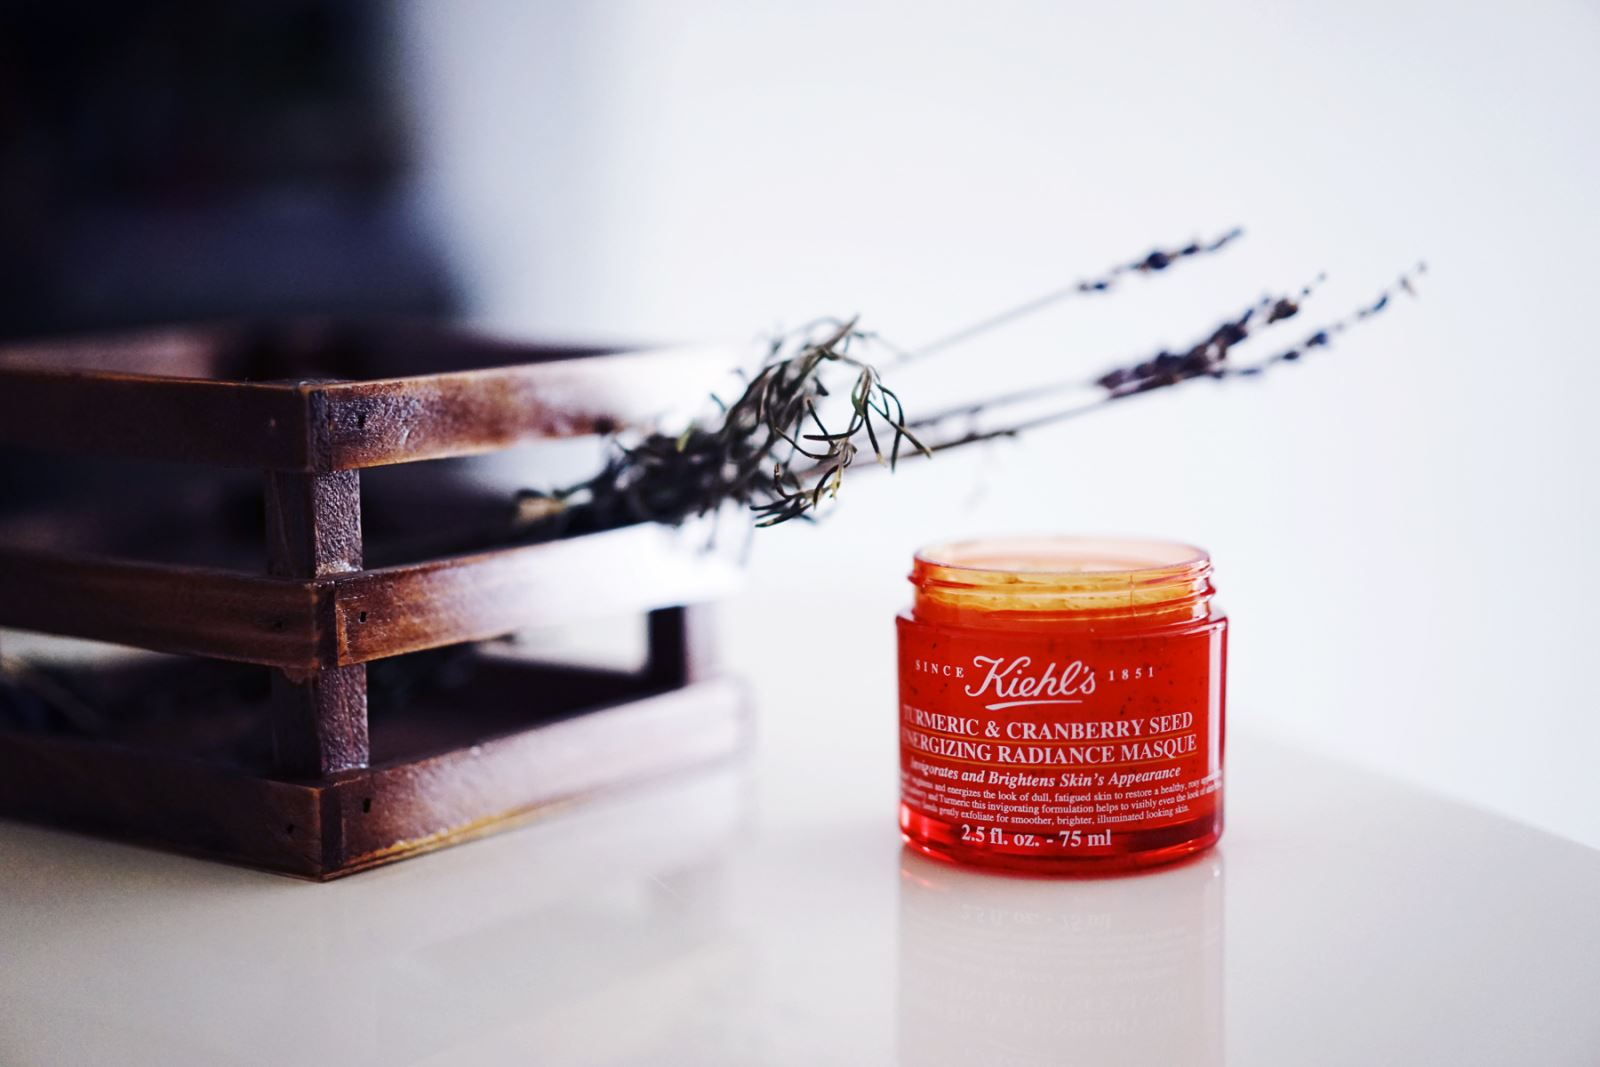 Kiehls Turmeric & Cranberry Seed Energizing Radiance Masque